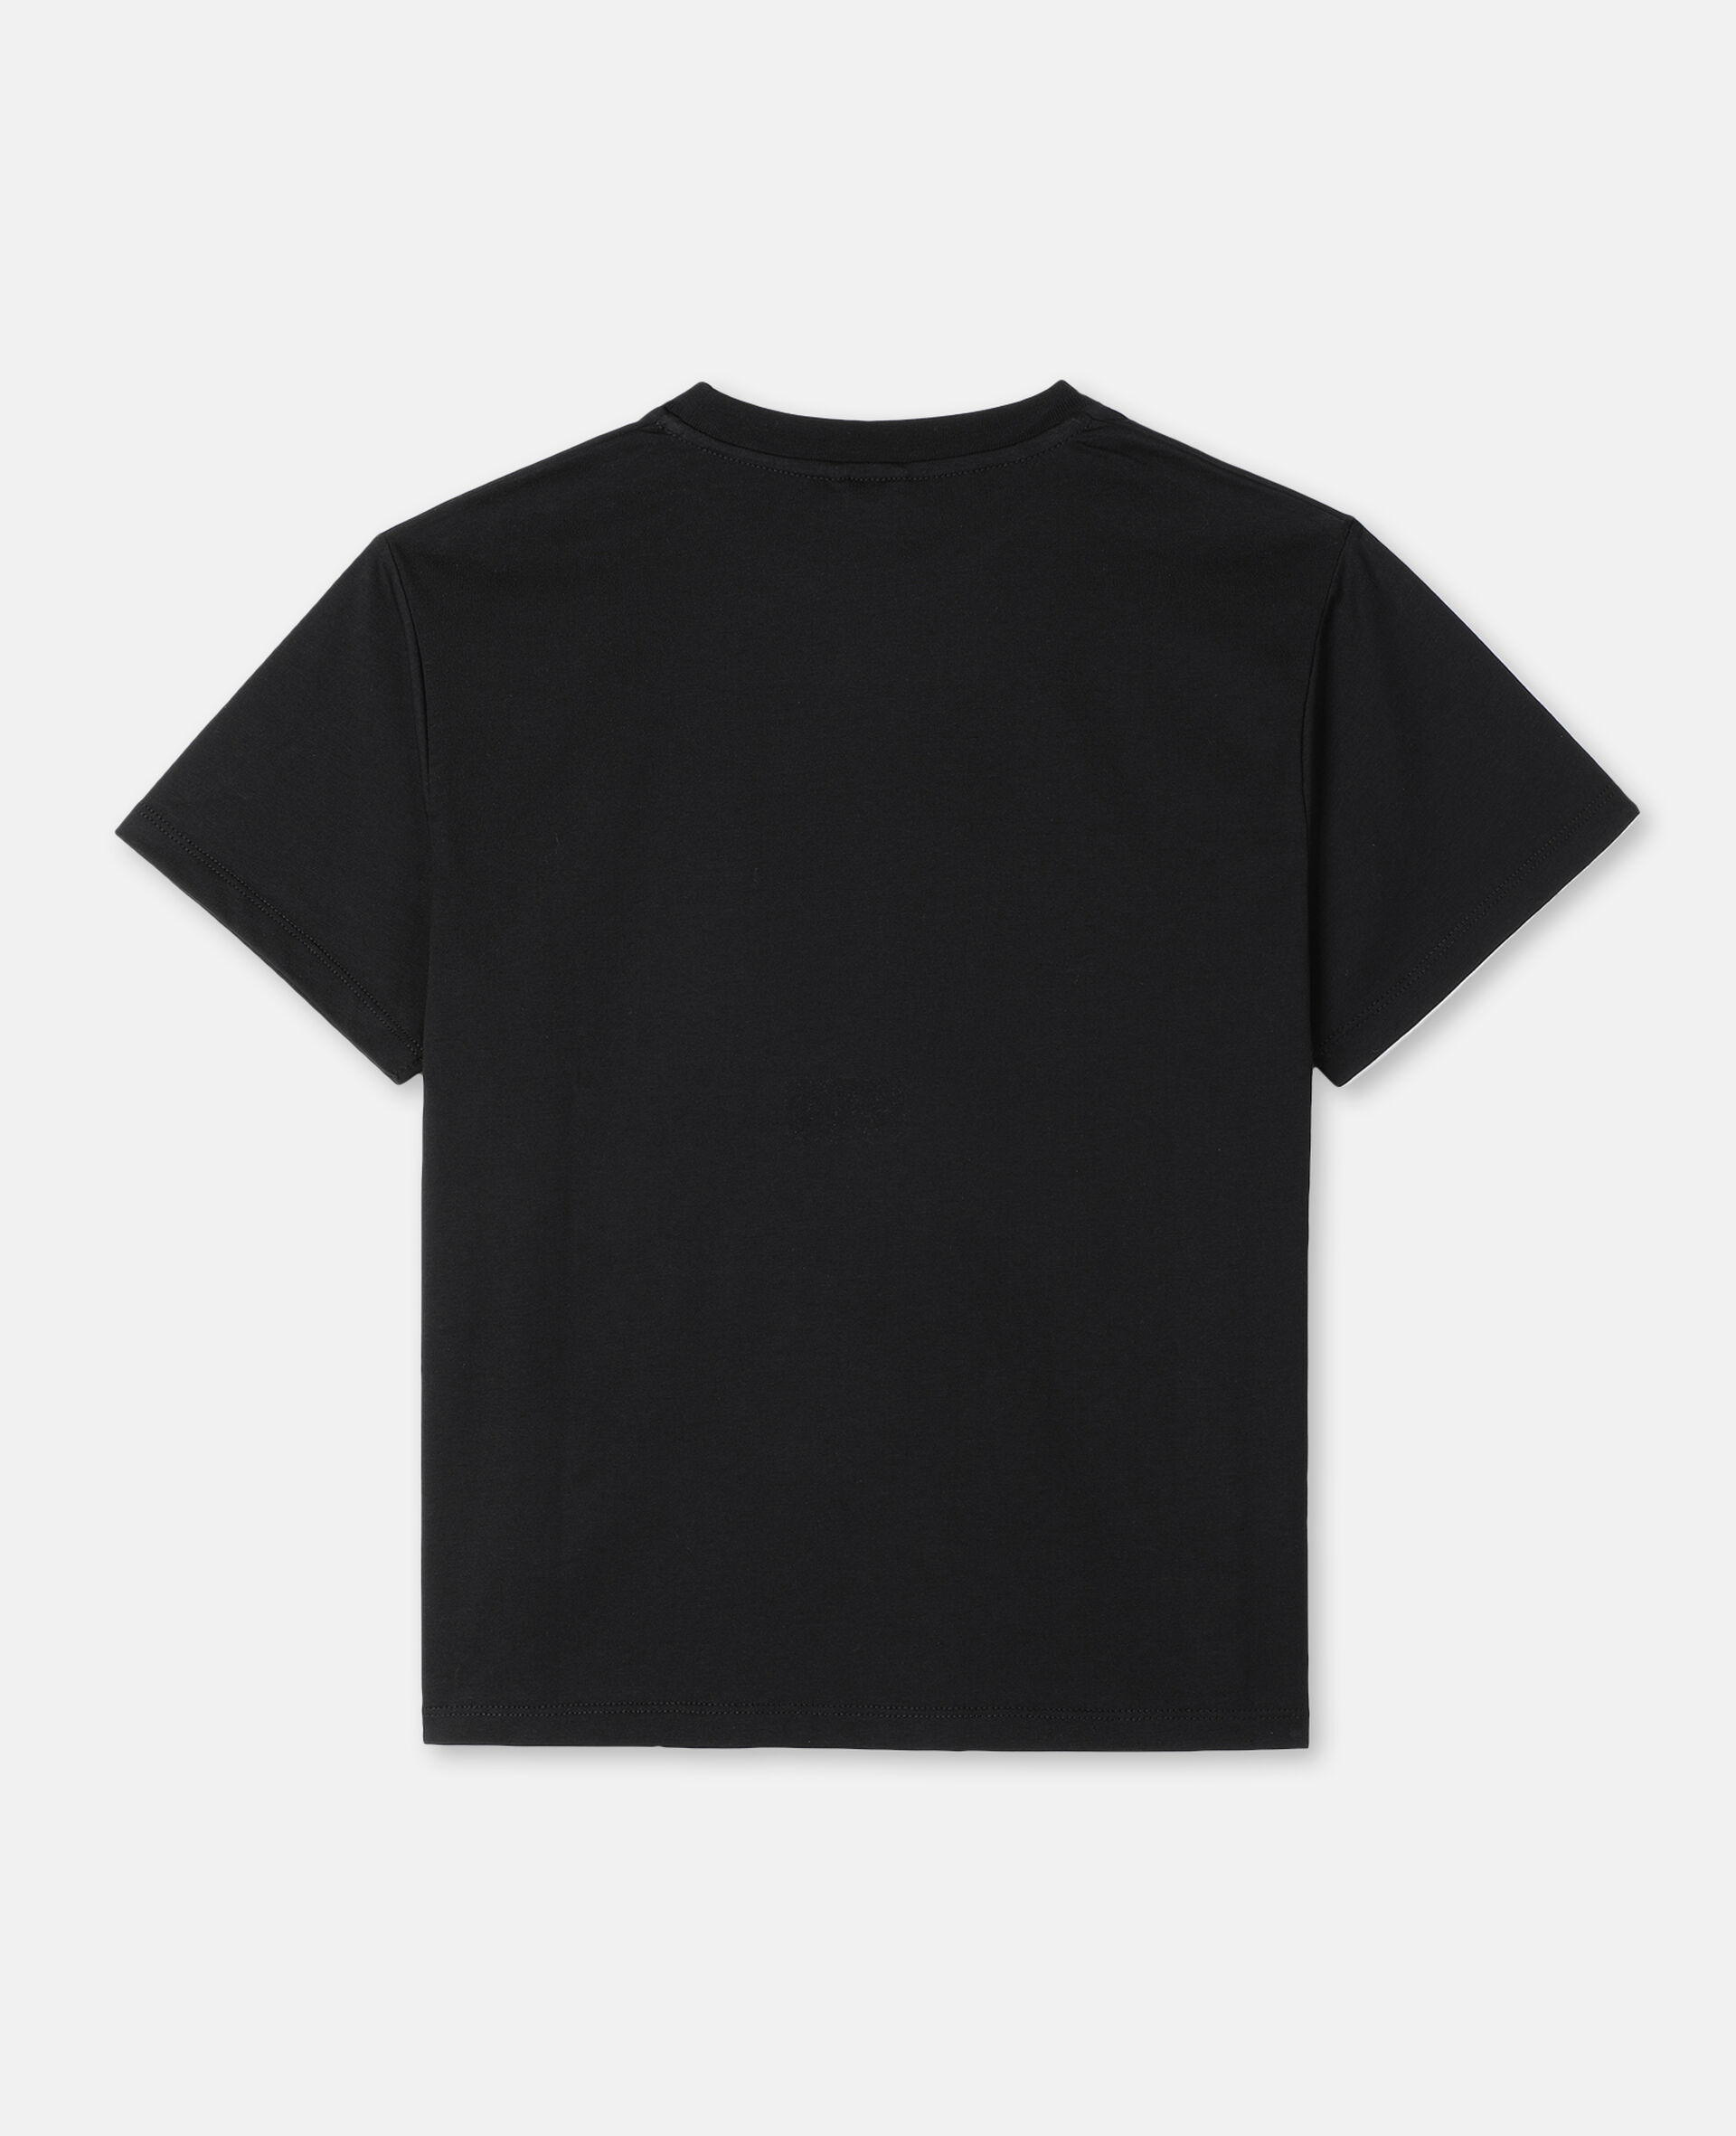 Oversize Logo Palm Cotton T-shirt -Black-large image number 3